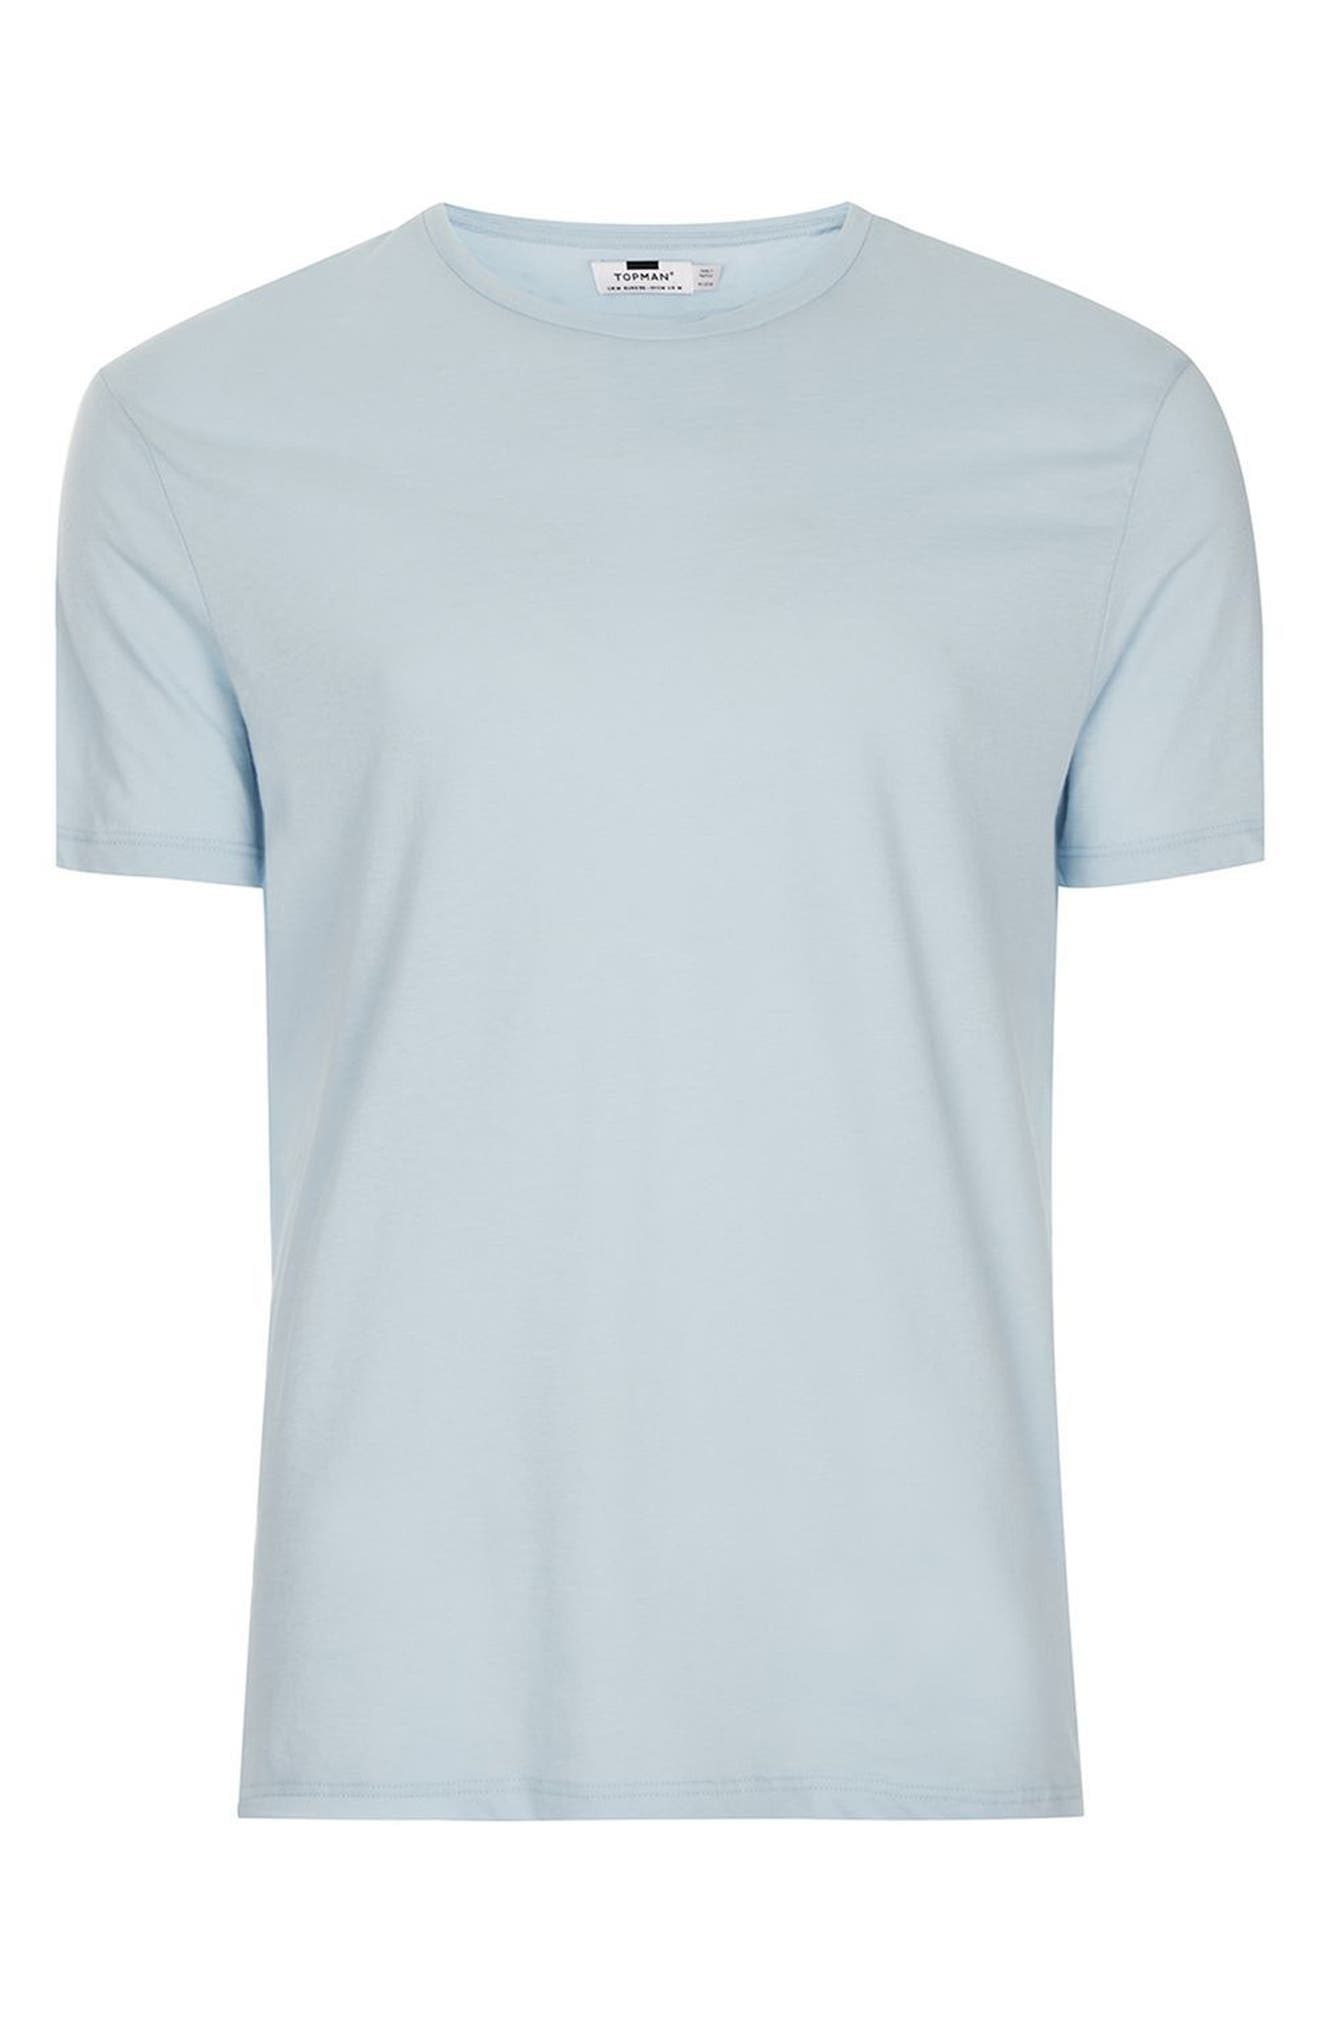 Lightweight Cotton T-Shirt,                             Alternate thumbnail 4, color,                             Light Blue